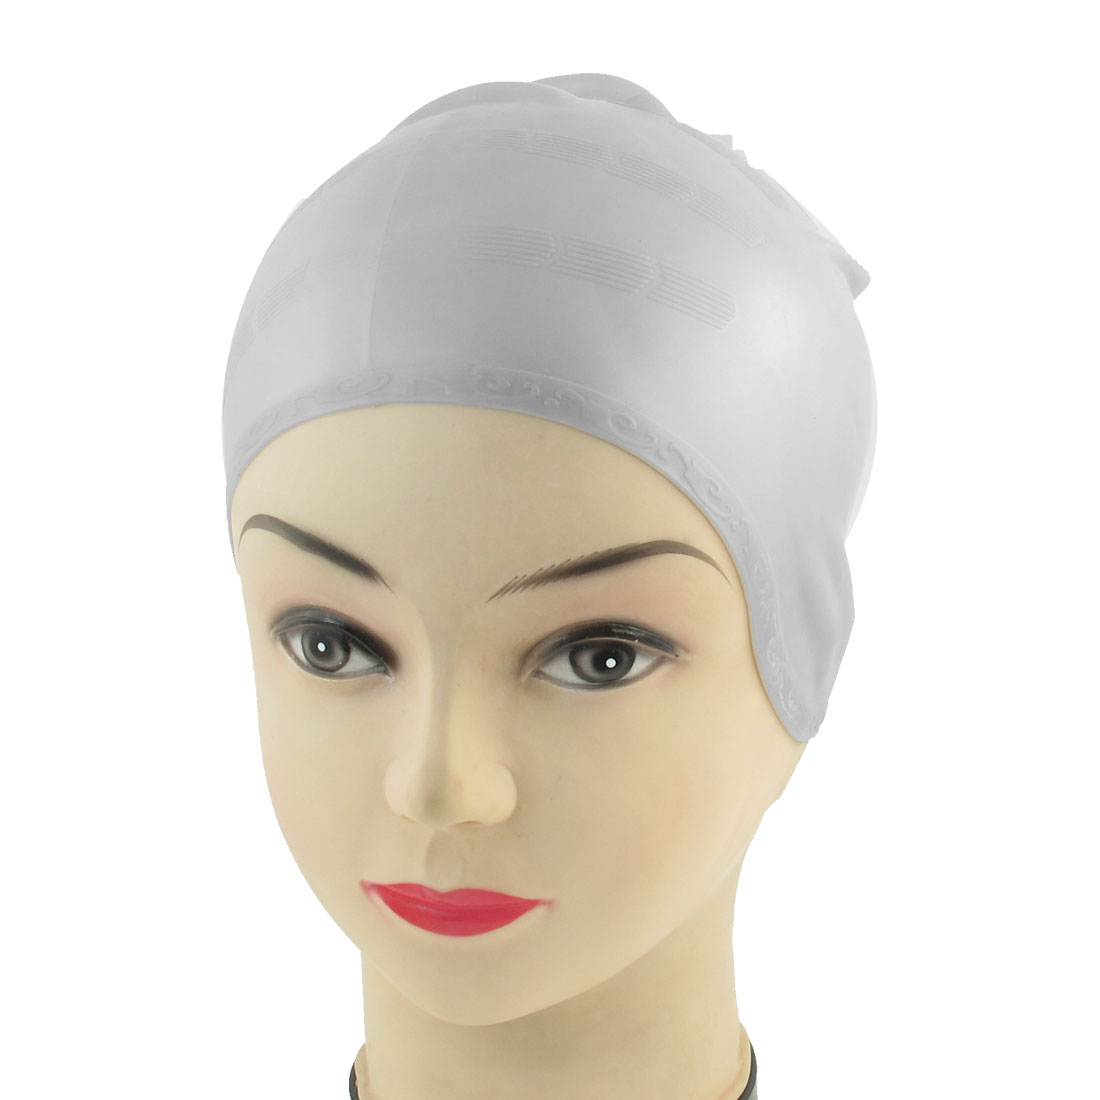 Adult Sporty Stretchy Silicone Swim Swimming Cap Light Gray